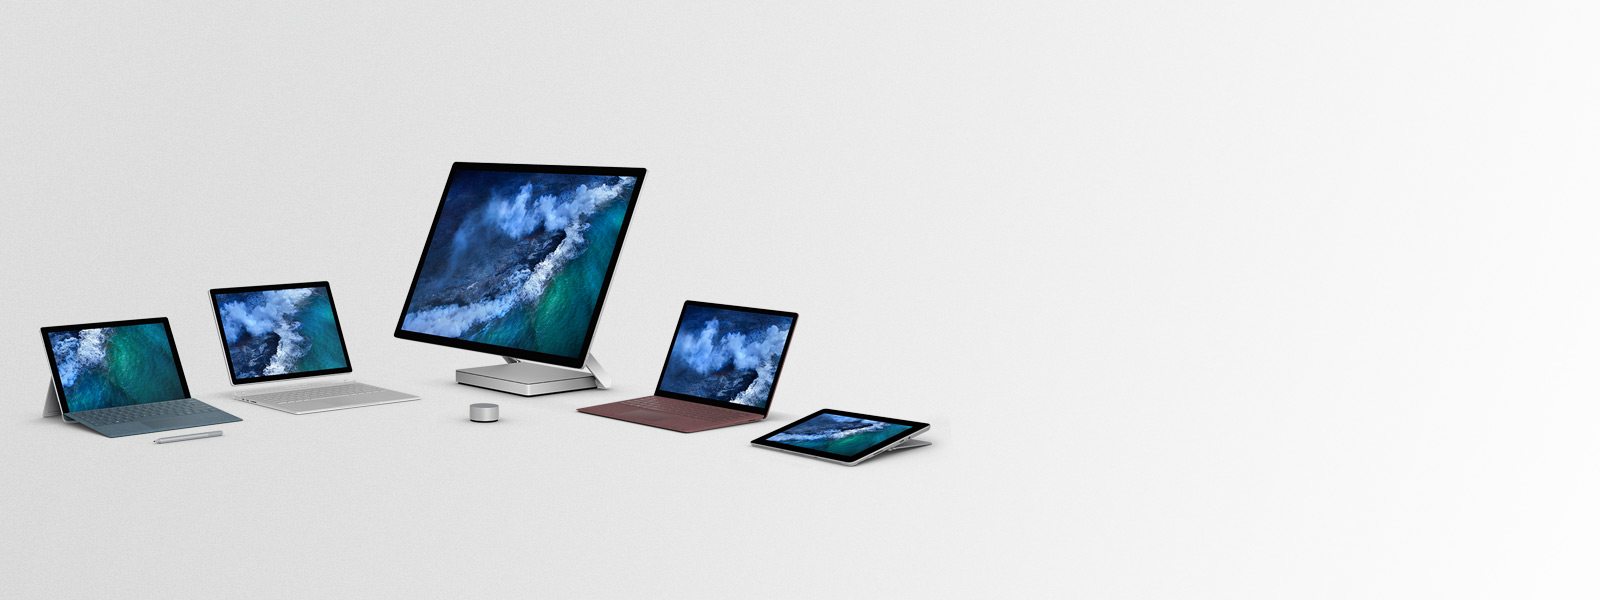 Surface Family - Surface Pro and Surface pen, Surface Book 2, Surface Studio and Dial, Surface Laptop, Surface Go